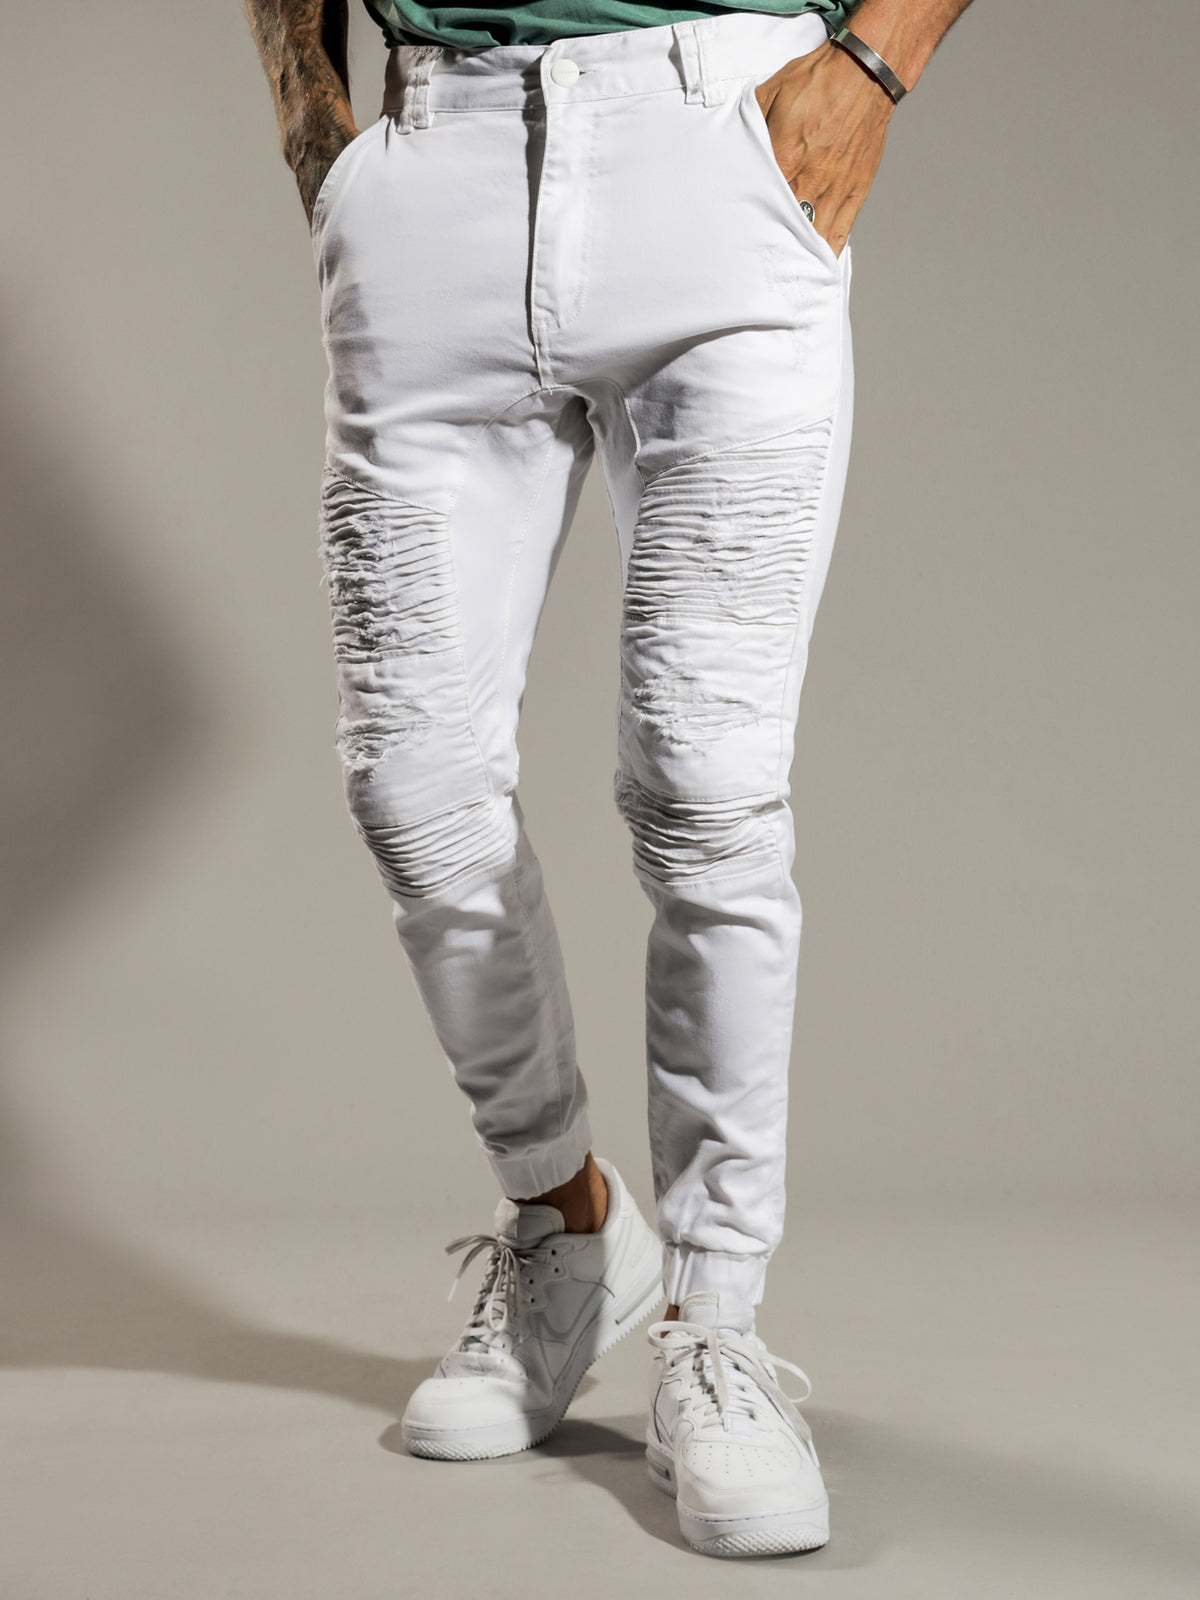 Hellcat Pants in White